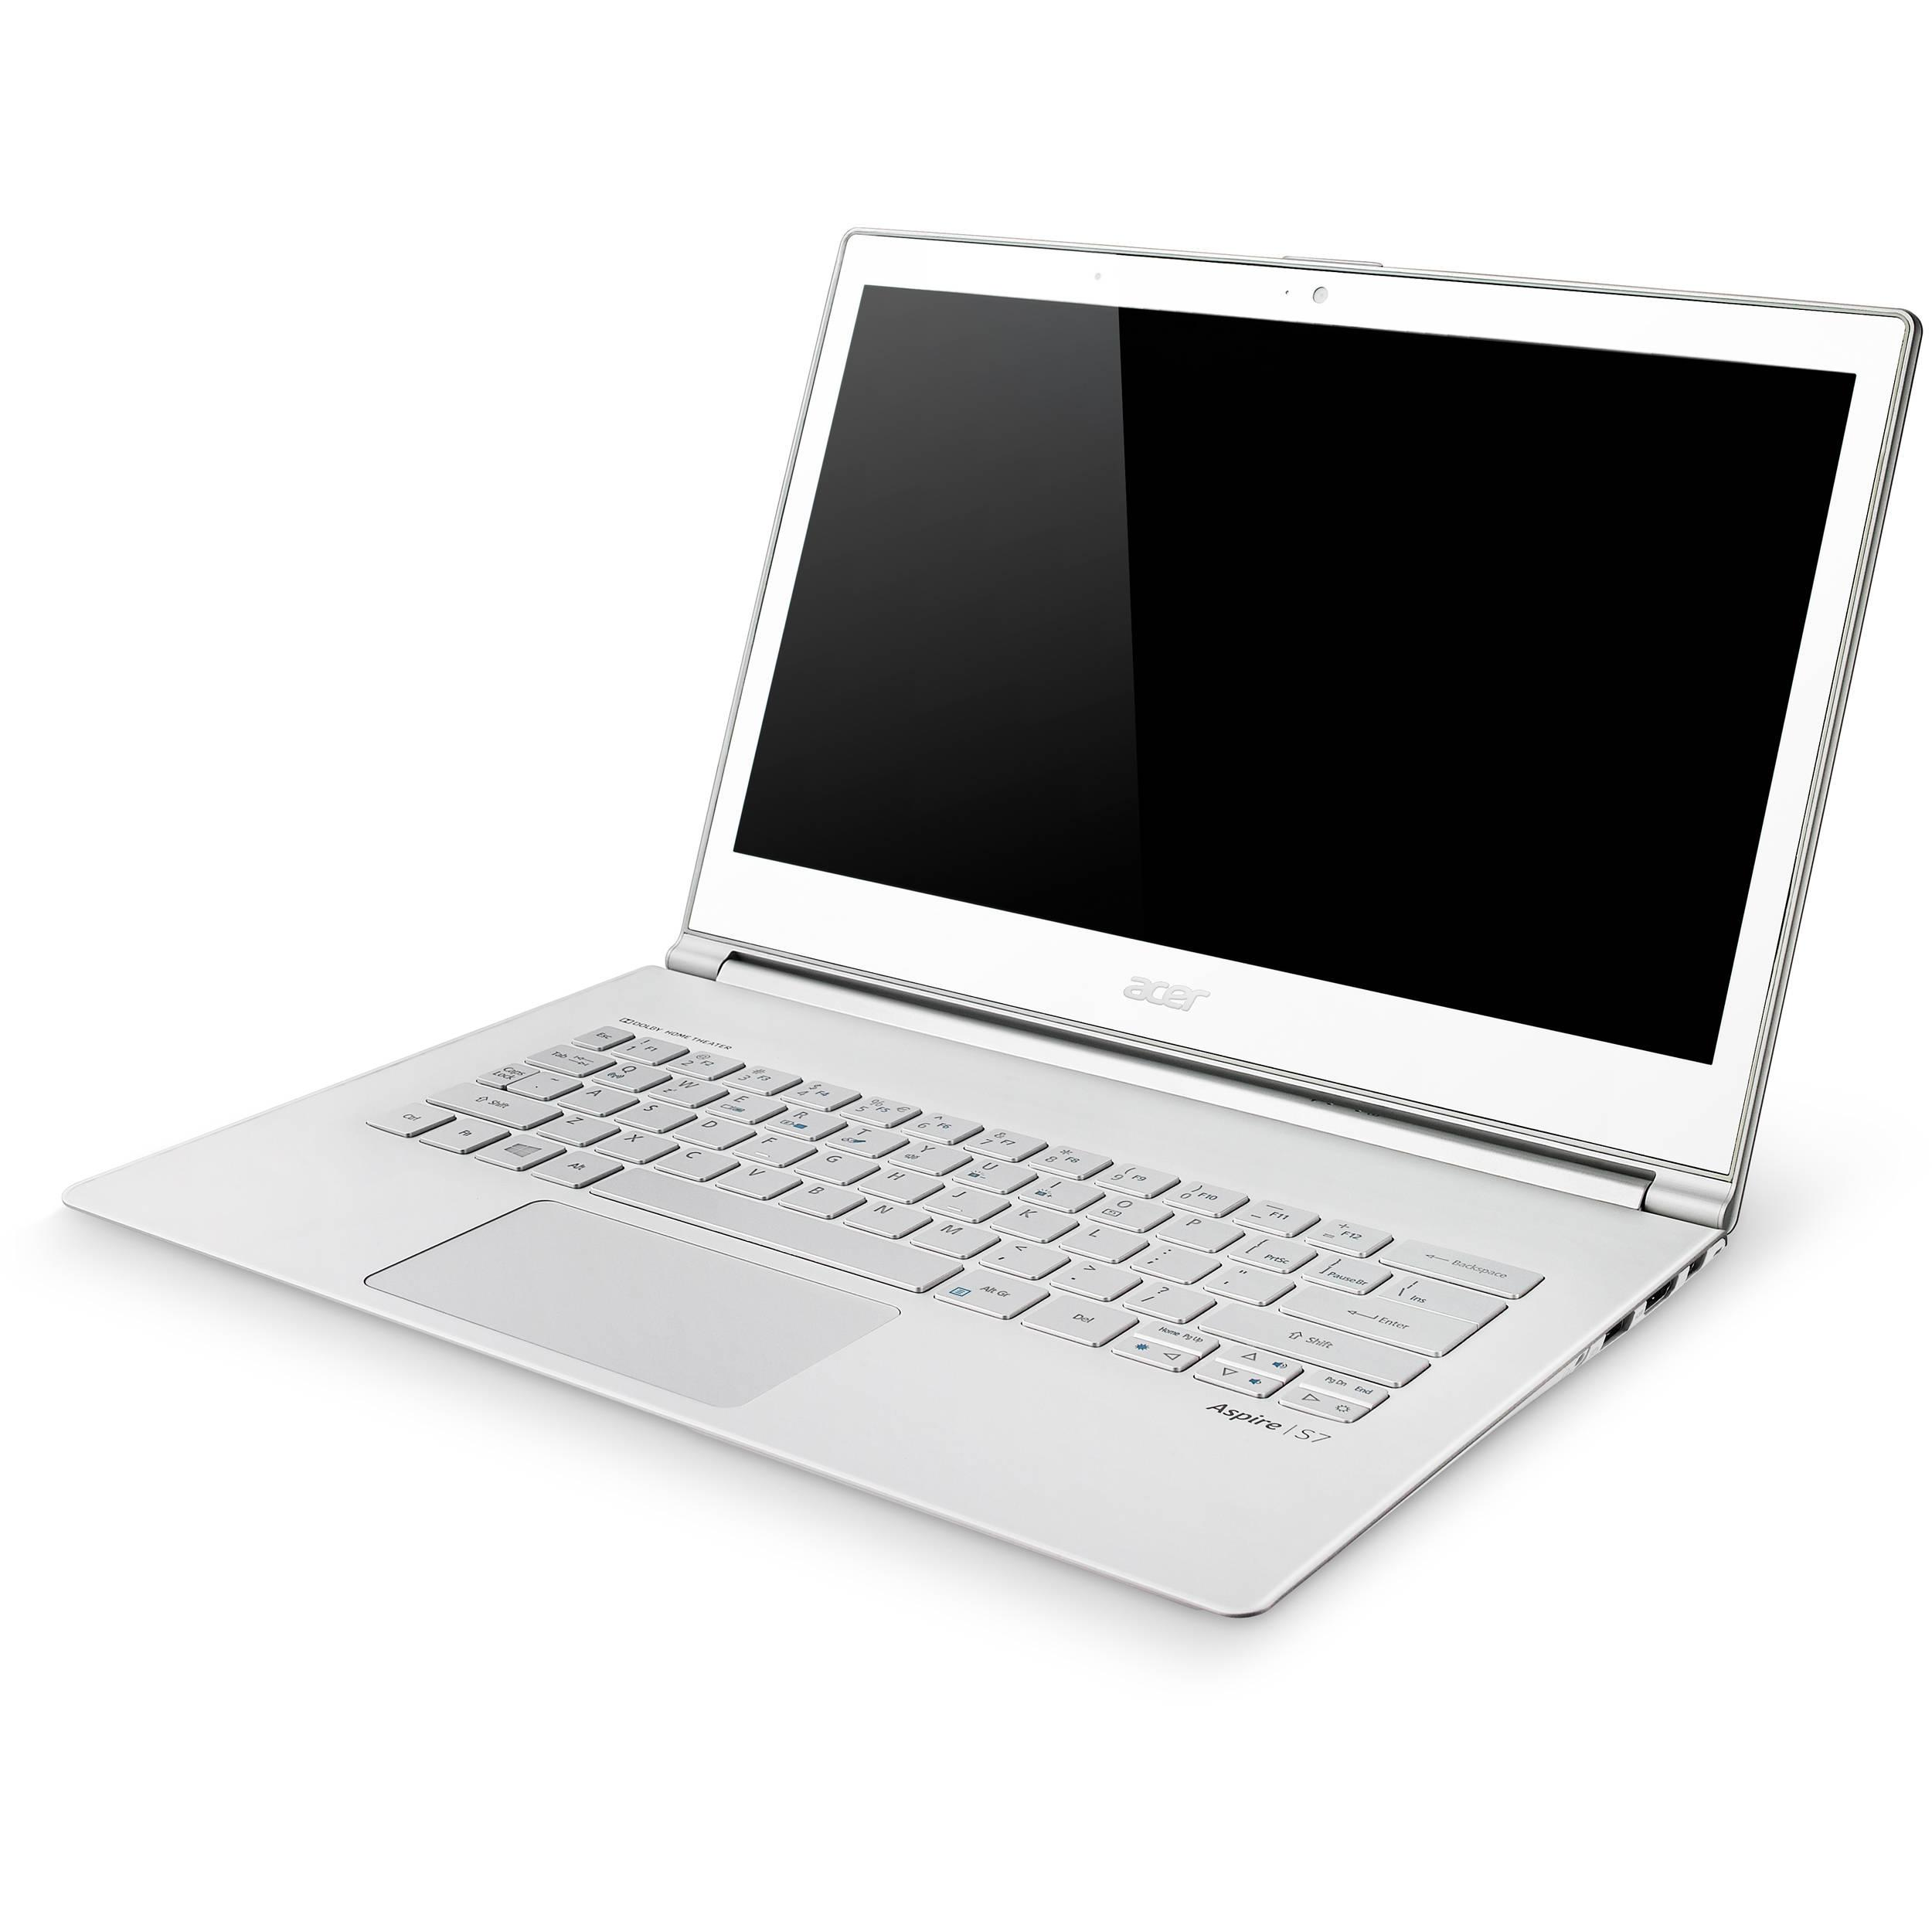 Acer Aspire S7-393 13.3in i7 8GB 256GB Touch Notebook Laptop